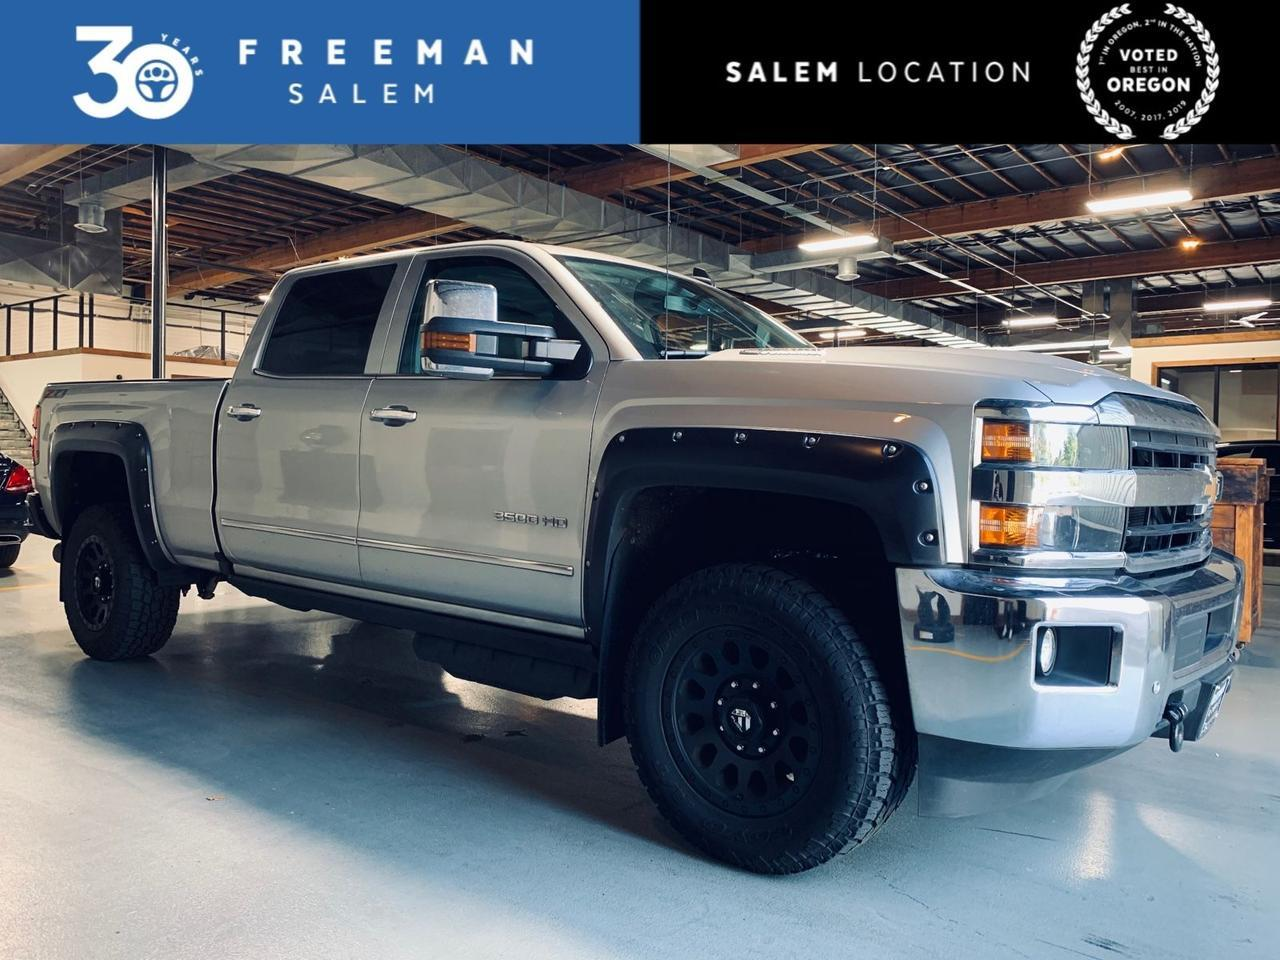 2019 Chevrolet Silverado 3500HD LTZ Duramax Plus Z71 Off-Road Package Salem OR